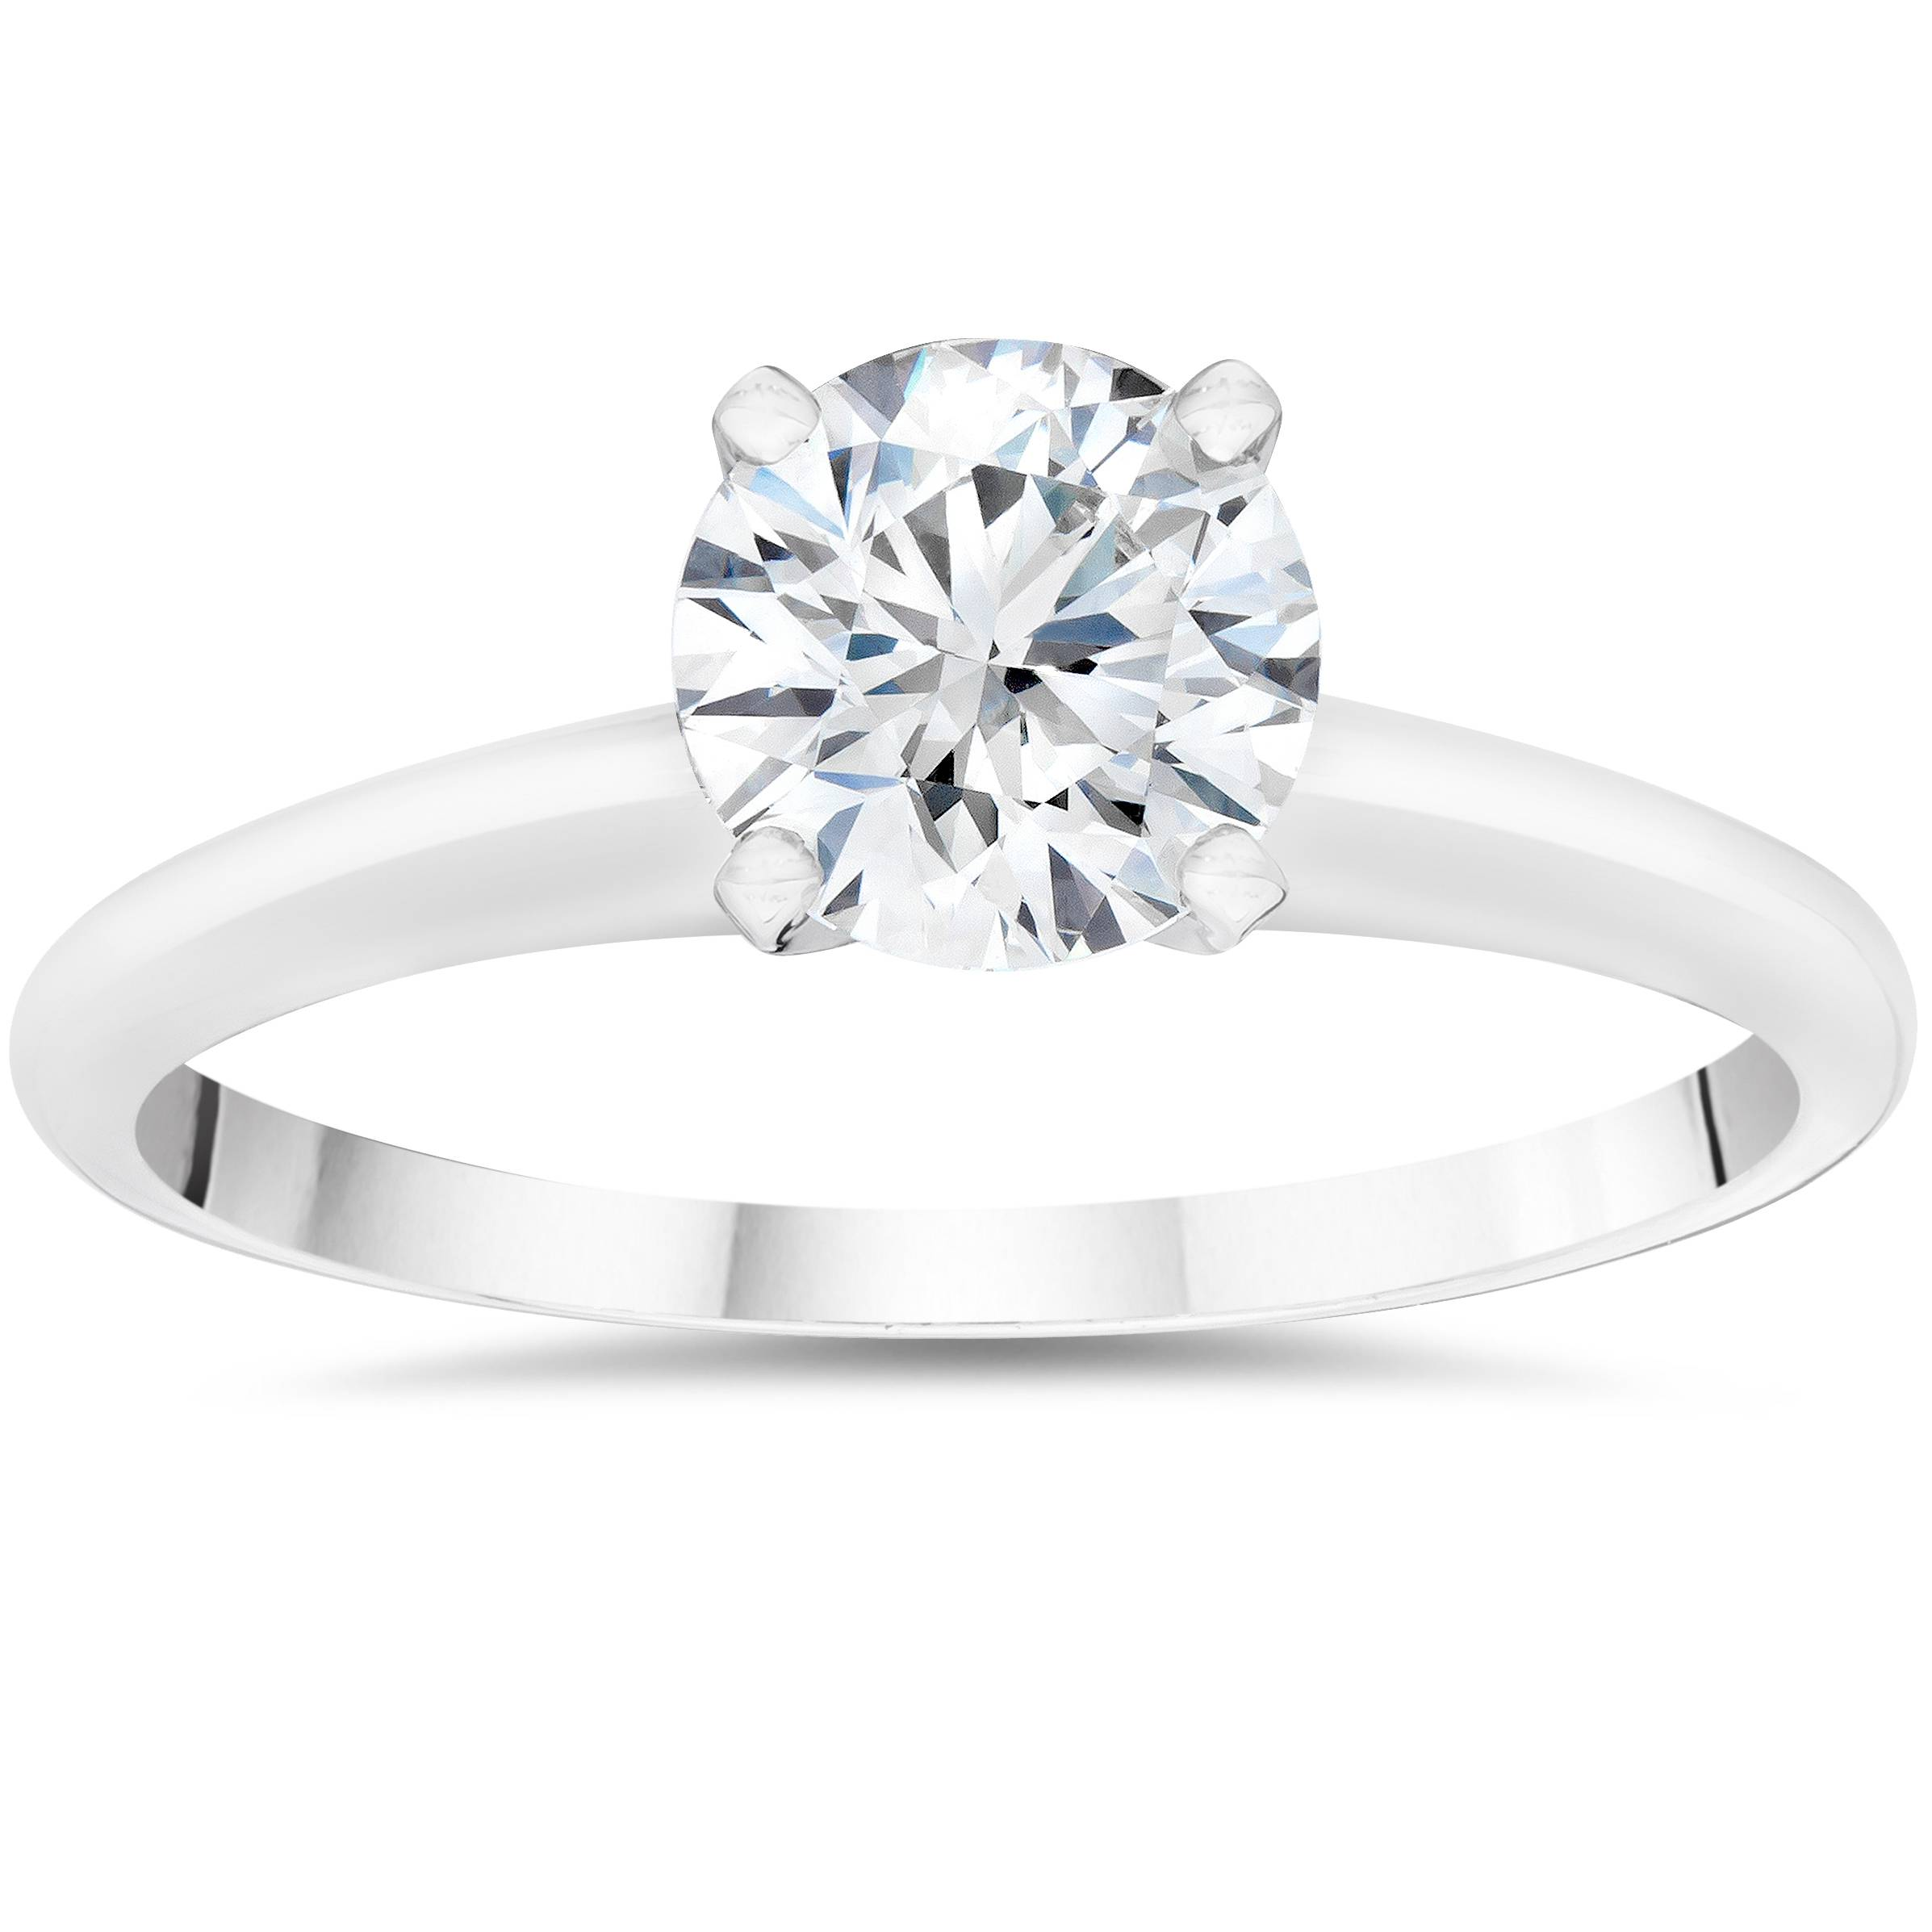 f05aa2370 Details about 1ct IGI Certified Lab Created Diamond Solitaire Engagement  Ring White Gold